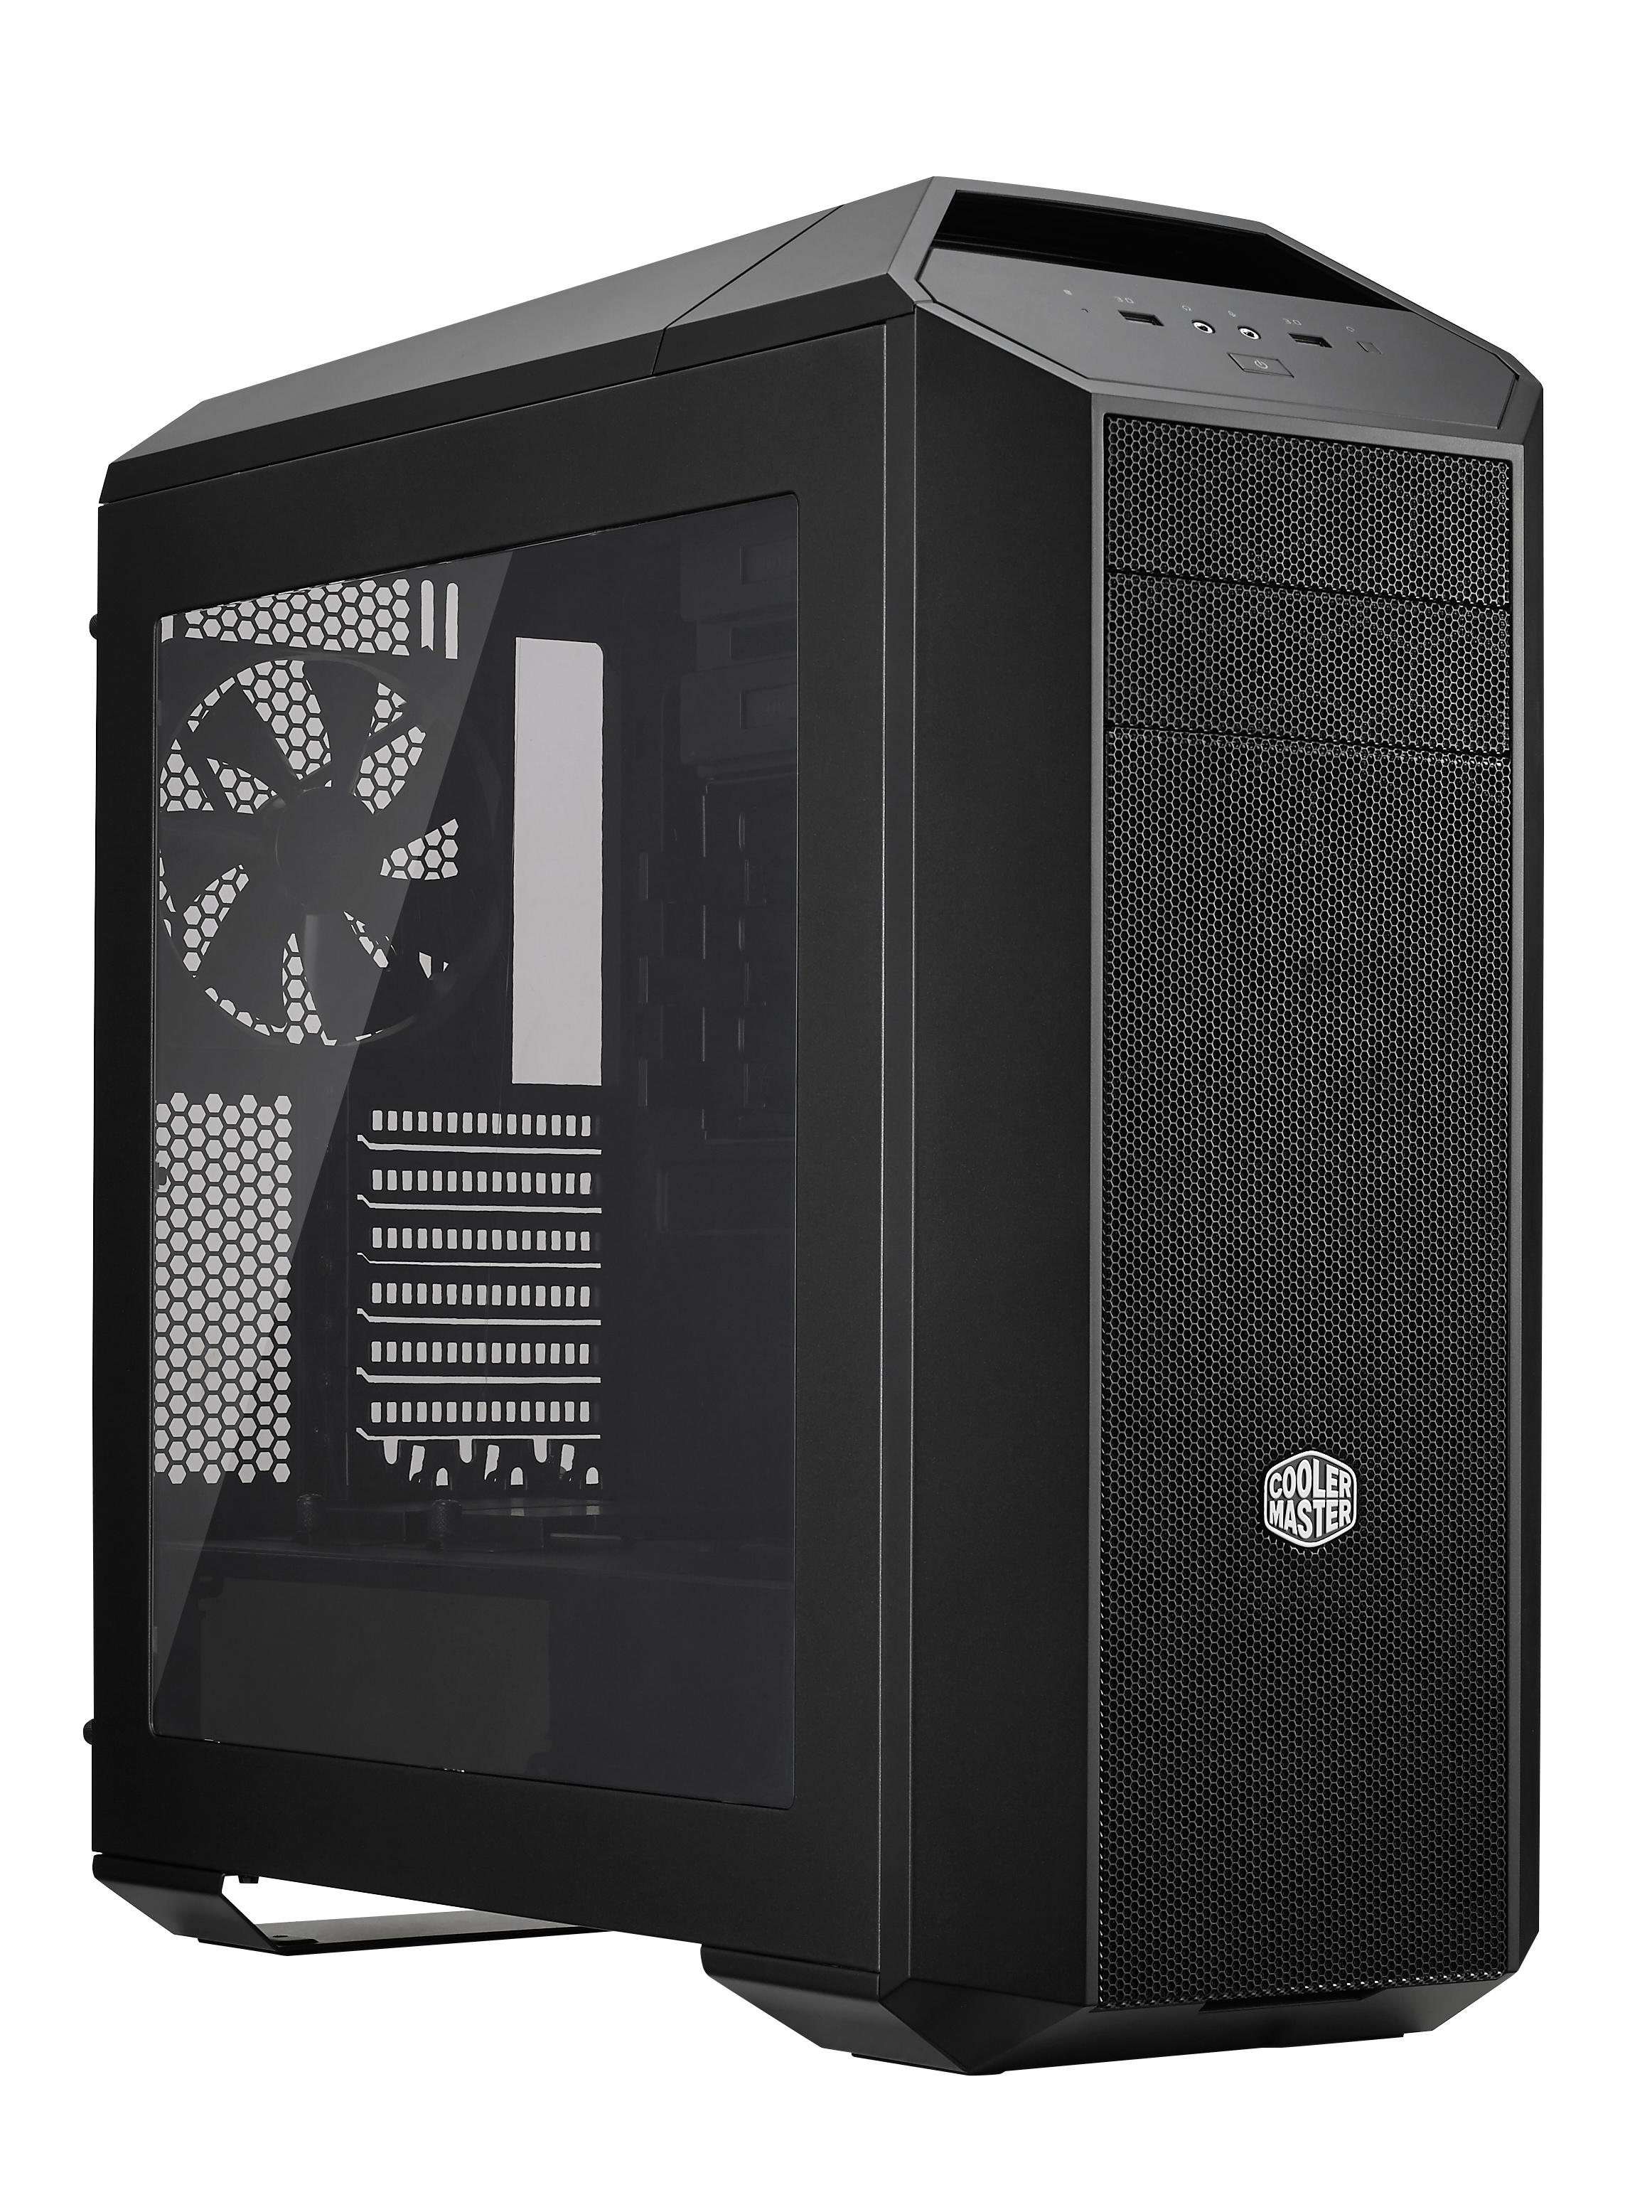 The Best Atx Mid Tower Pc Cases Pc Gamer